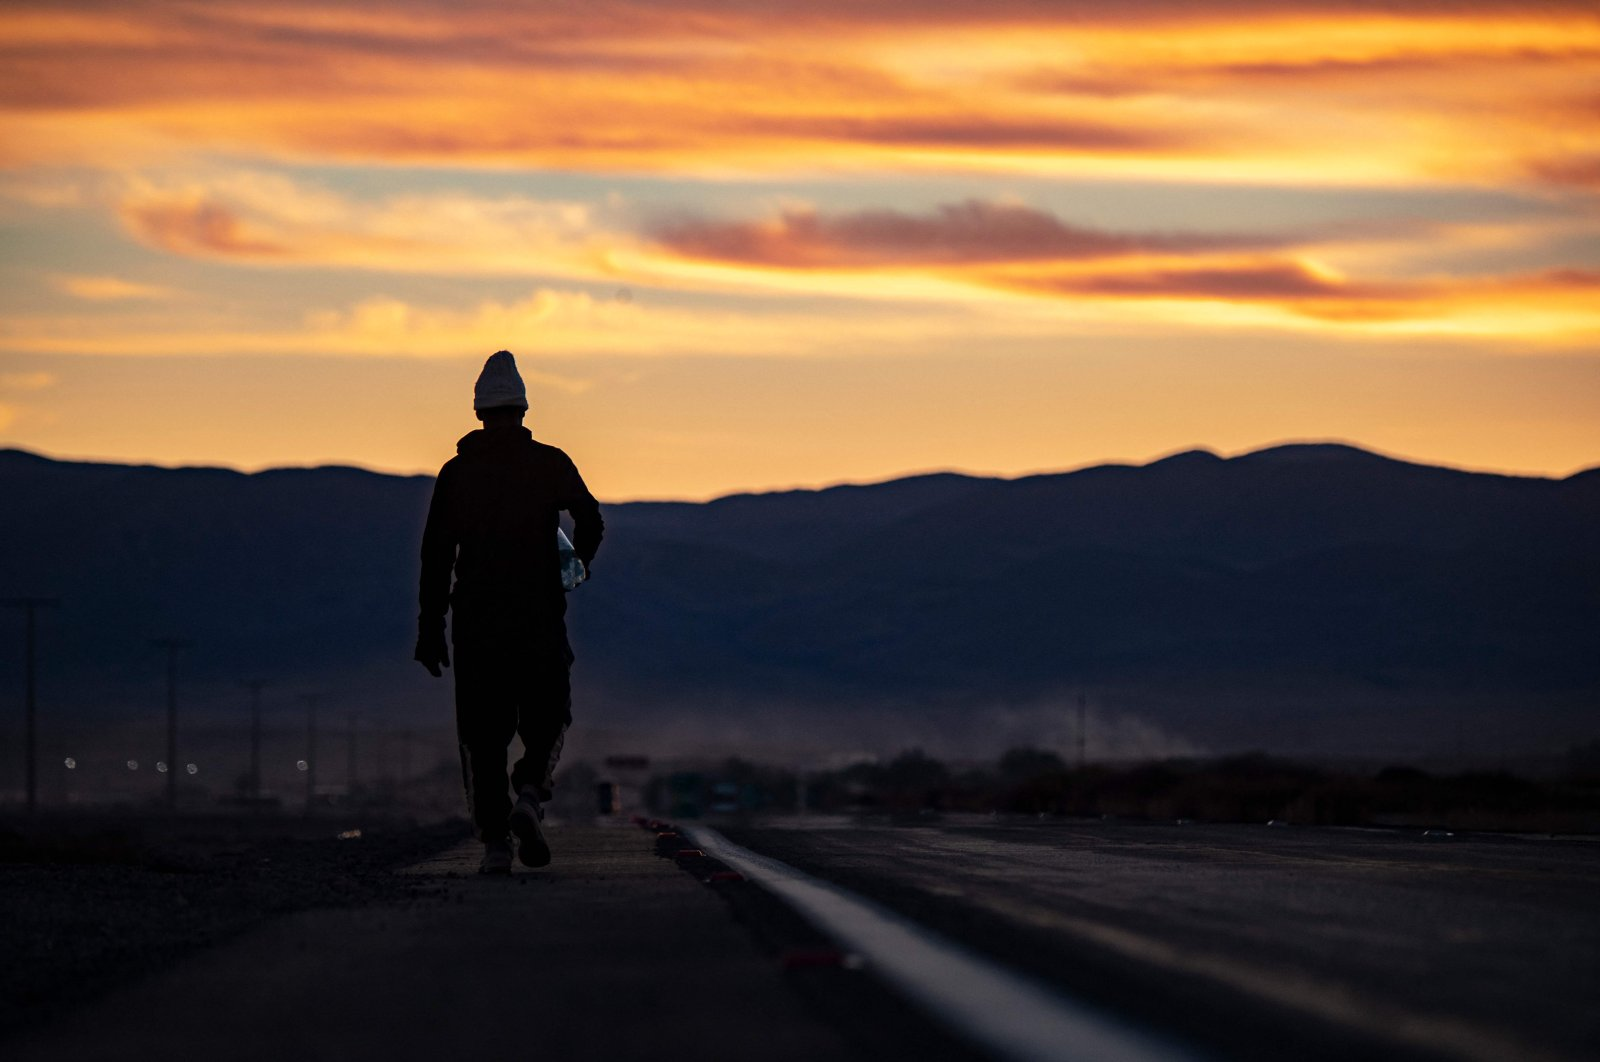 A Venezuelan migrant walks along the road linking the border town of Colchane with Iquique, Chile, on Sept. 23, 2021. (AFP Photo)